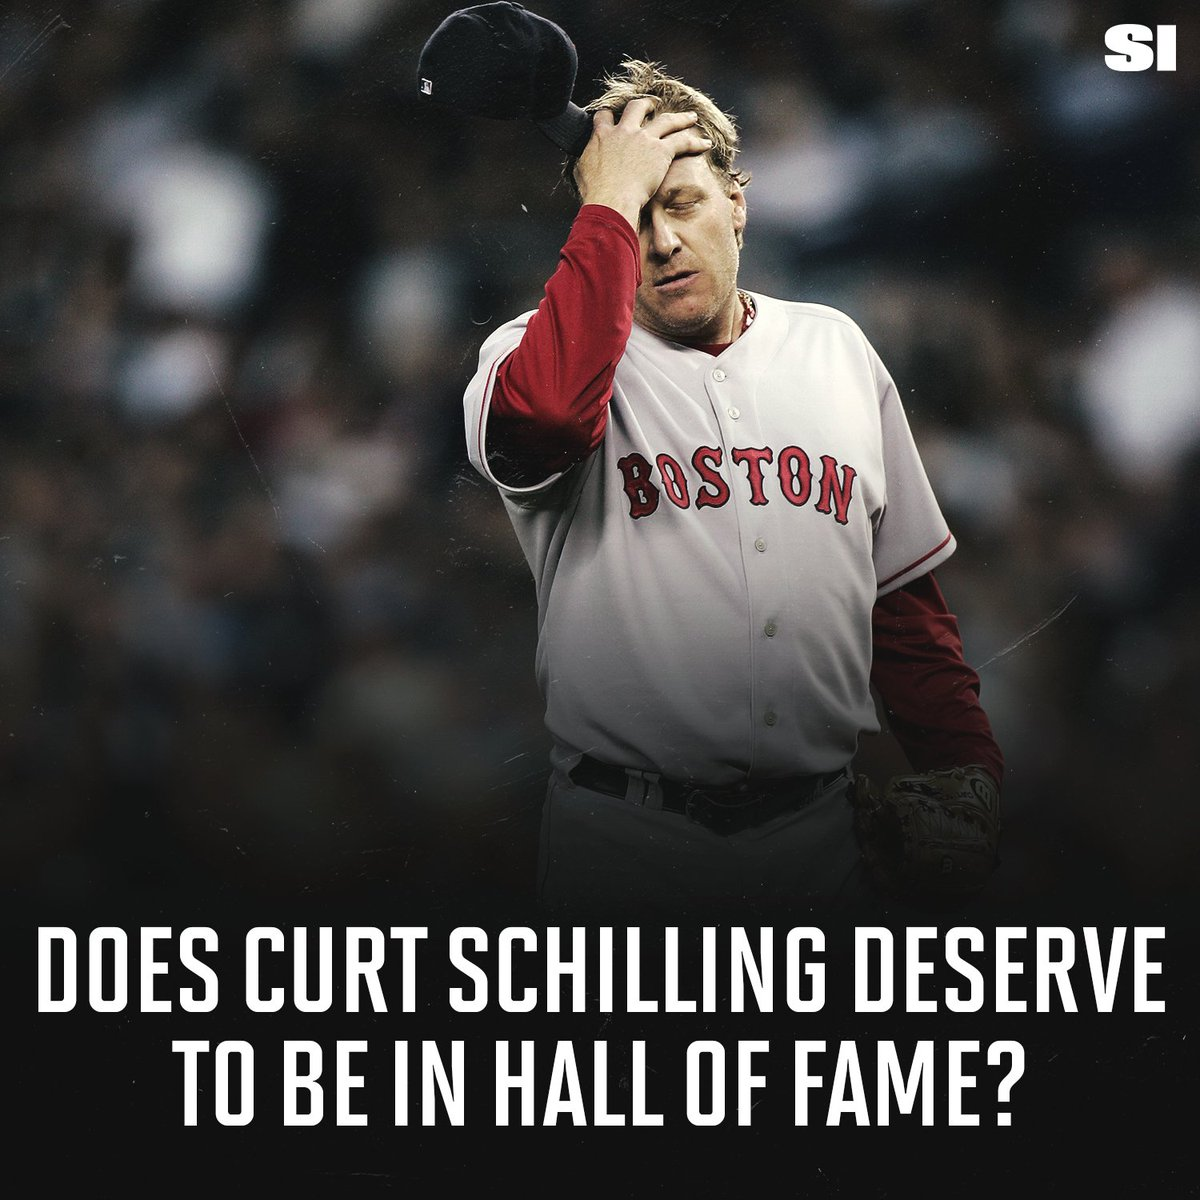 Curt Schillings case is a complicated one given the character and integrity aspects of consideration, but overall, should he be in the Hall of Fame? 🤔 buff.ly/3qZhPQQ